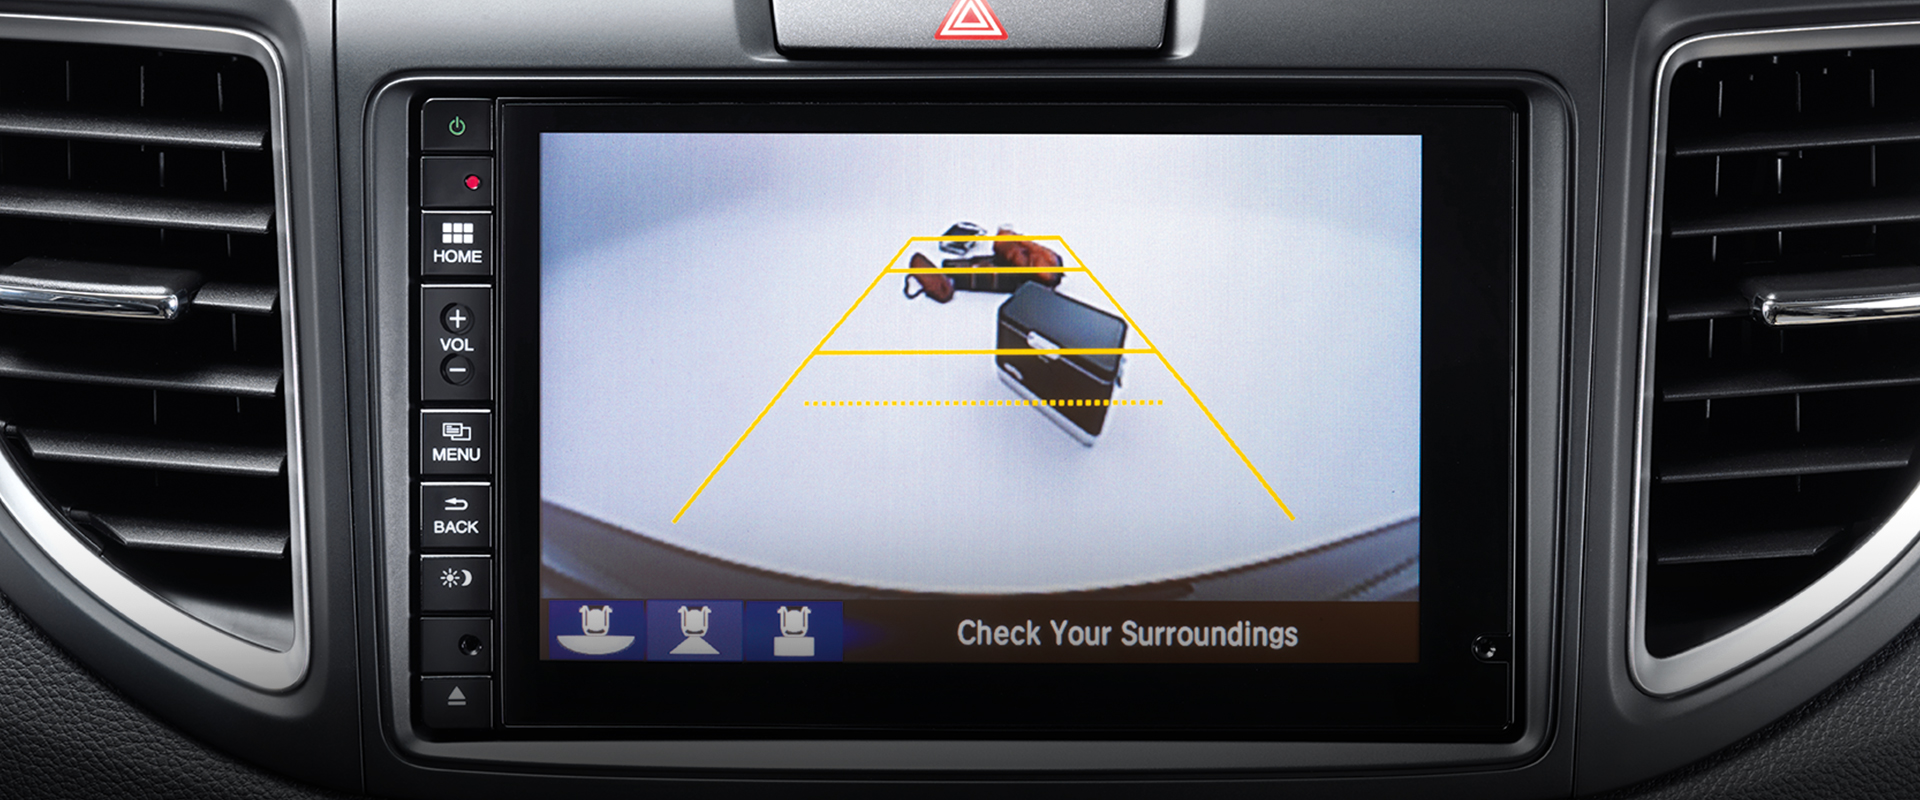 Honda CR-V Multi-Angle Rearview Camera with Guidelines